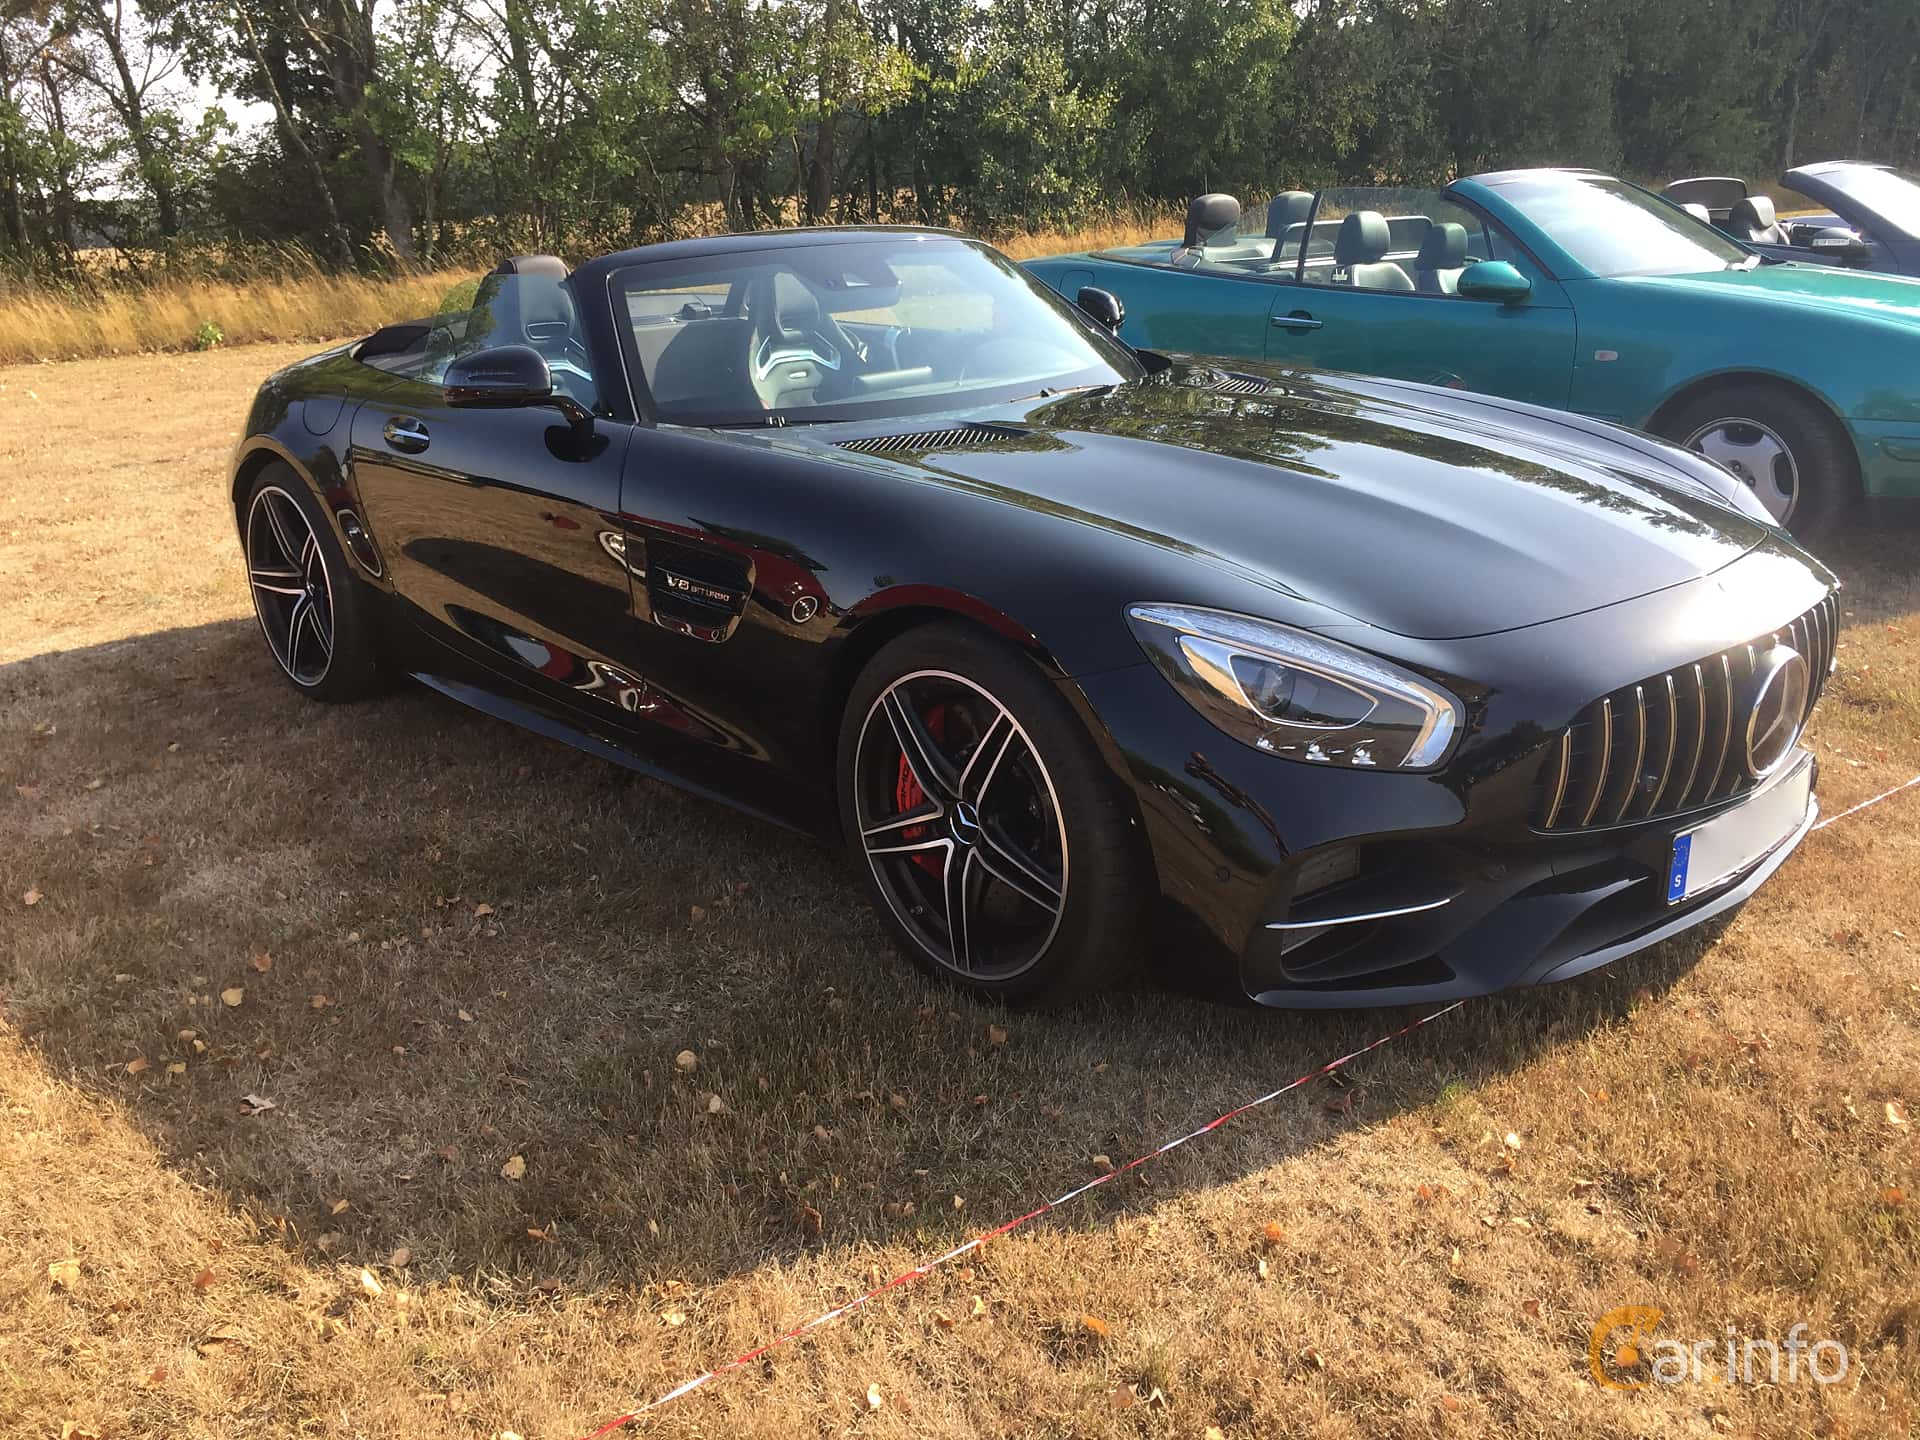 Mercedes-Benz AMG GT C Roadster  AMG Speedshift DCT, 557hp, 2017 at Eddys bilträff Augusti 2018